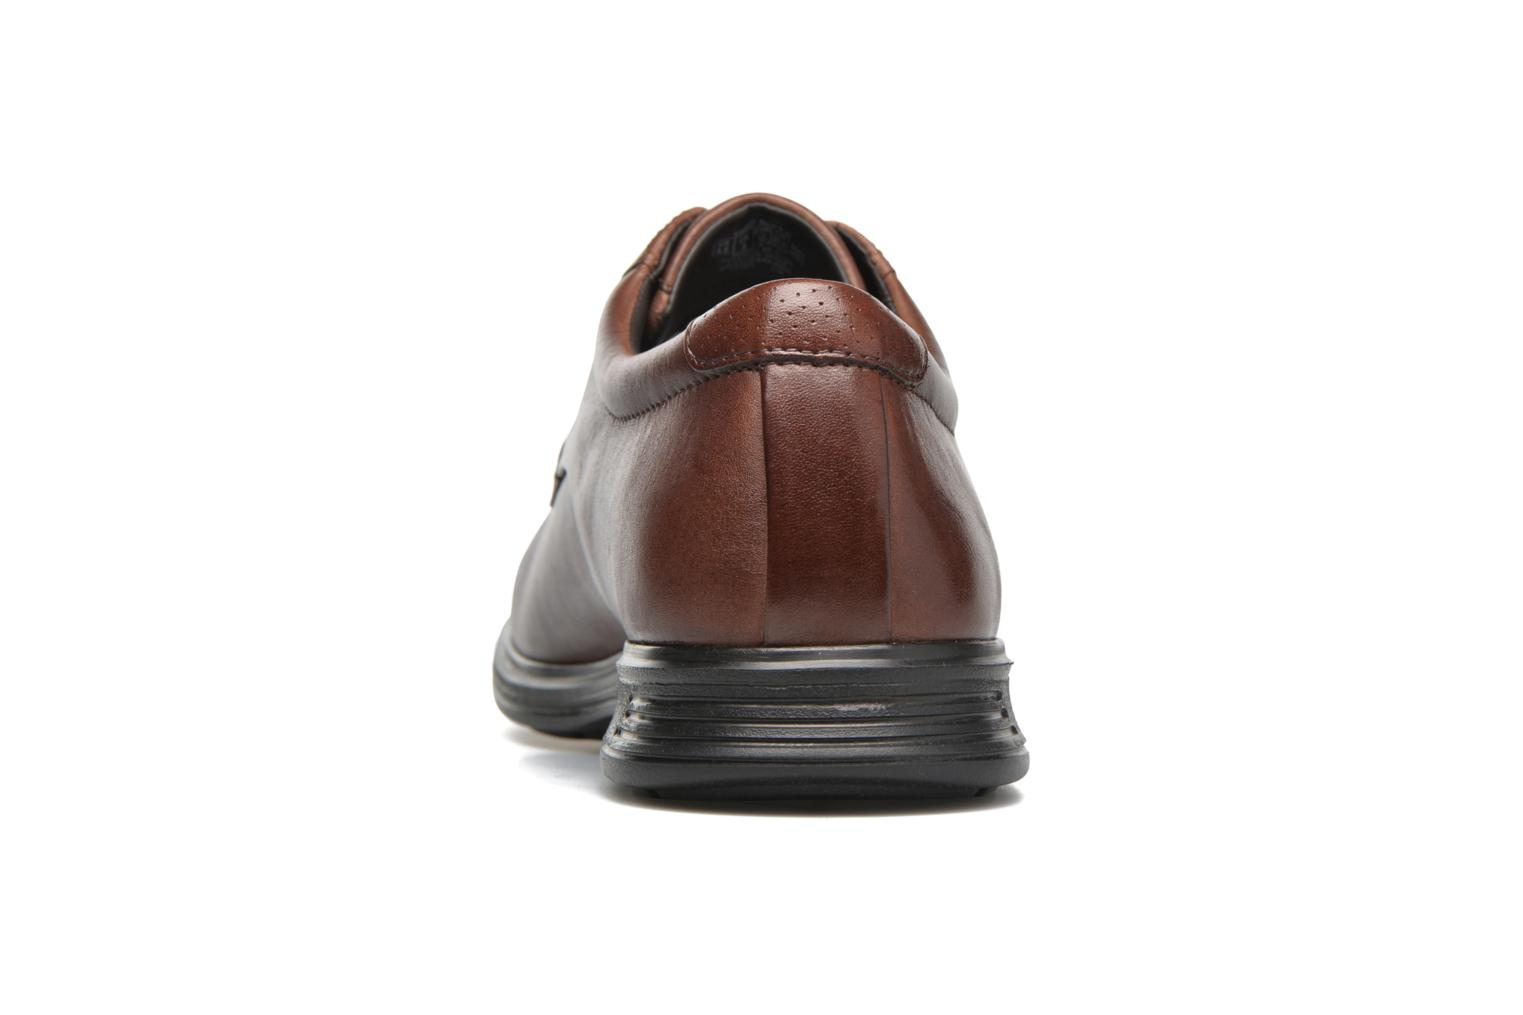 DP2 Light Plaintoe Ox New Brown